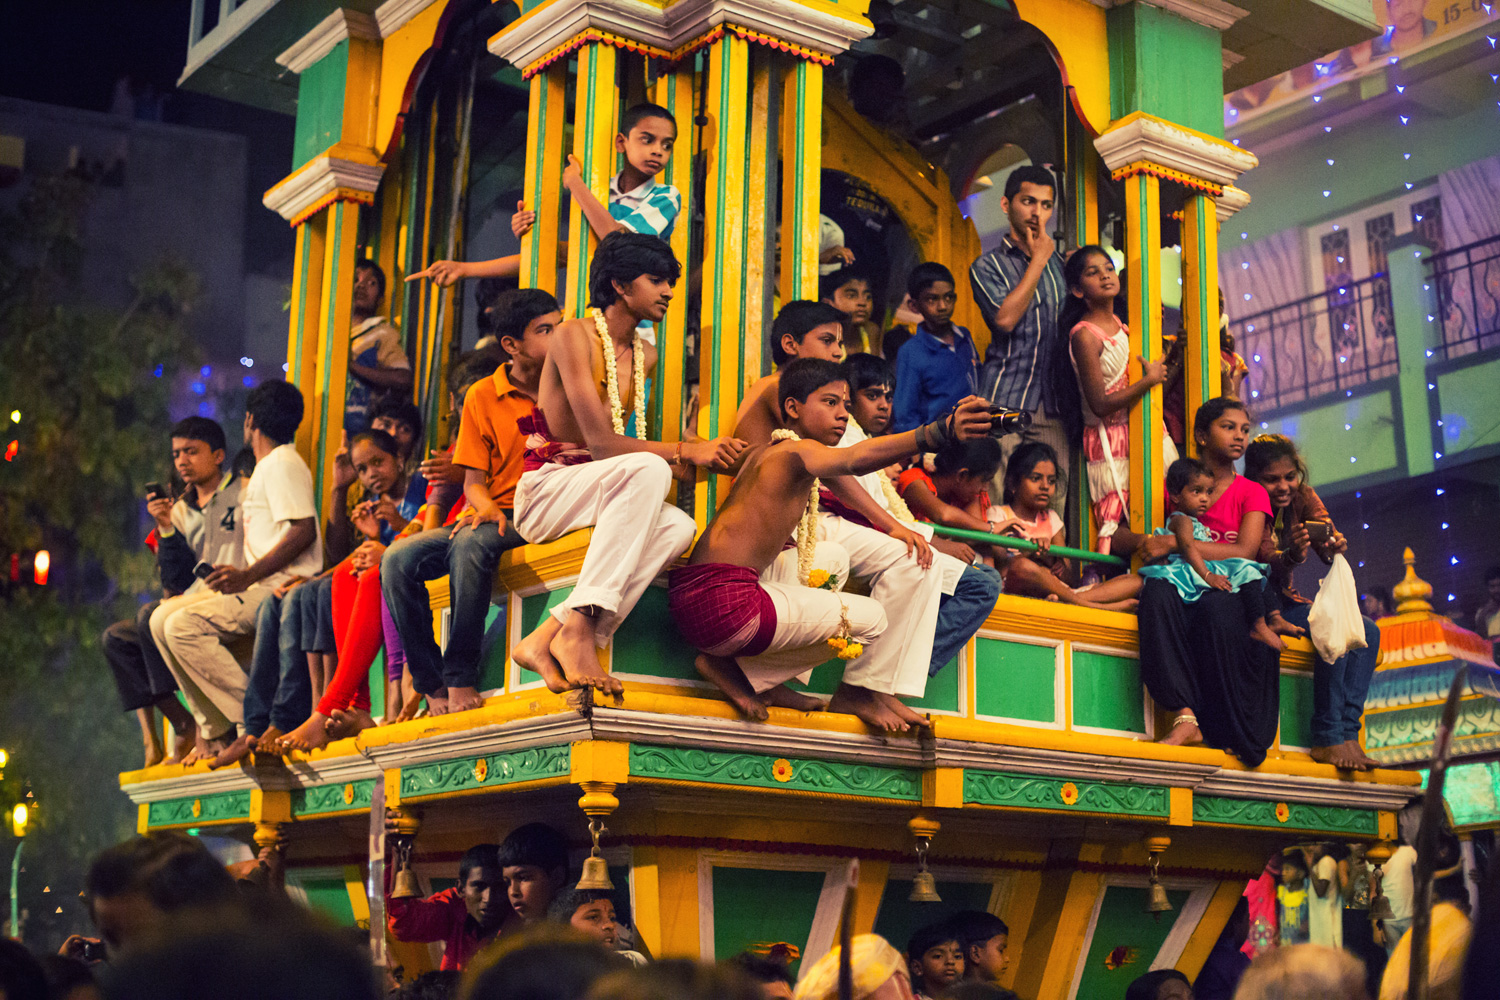 The Karaga creates a vibrant memory in an entirely new generation of spectators, eager to watch the Hasi Karaga. With a documented history of more than 400 years, the festival has an unbroken legacy of having been celebrated every single year and has enjoyed immense royal patronage throughout.